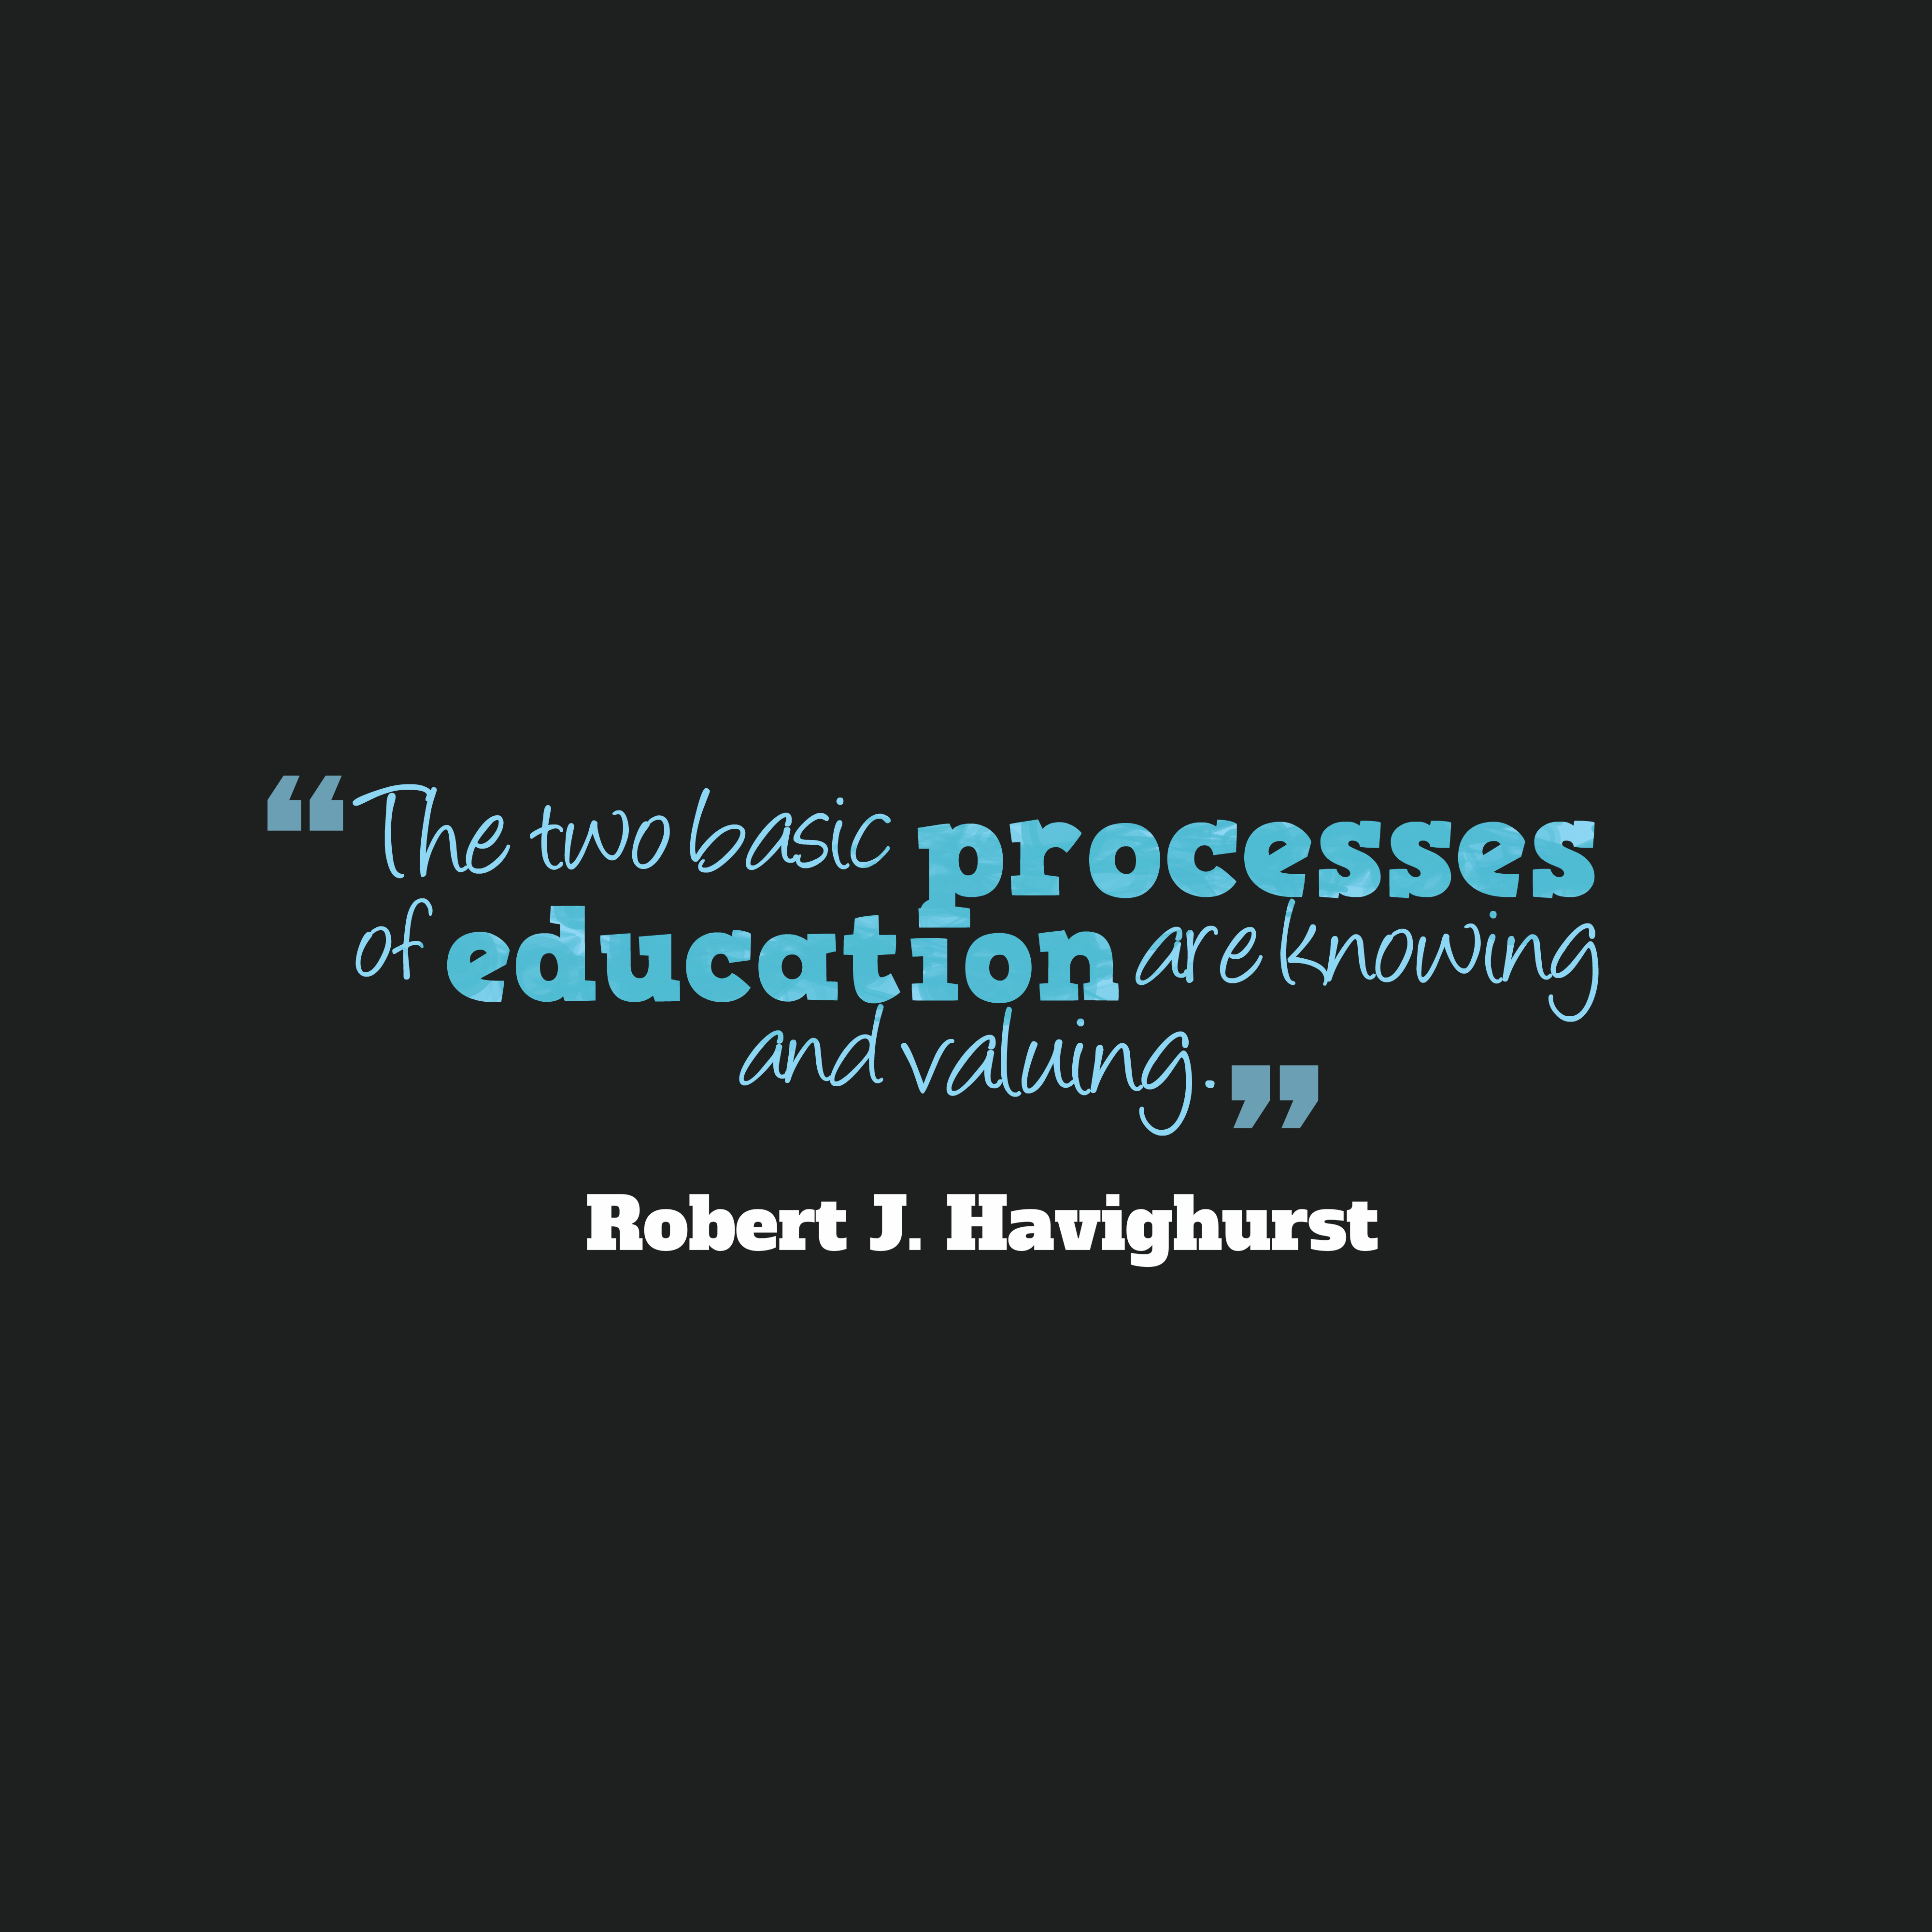 Quotes image of The two basic processes of education are knowing and valuing.